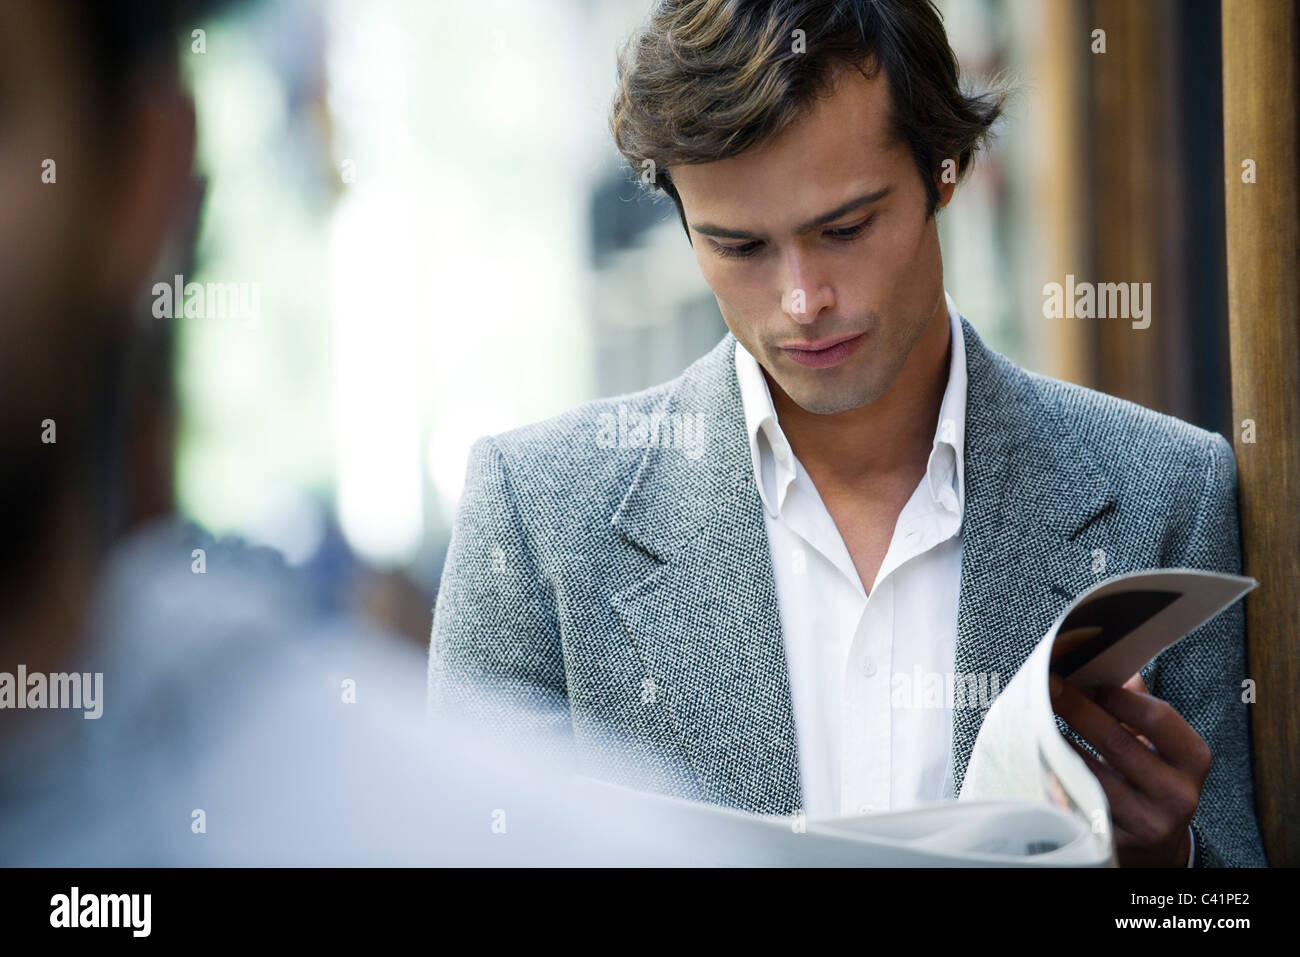 Man leaning against wall reading newspaper - Stock Image